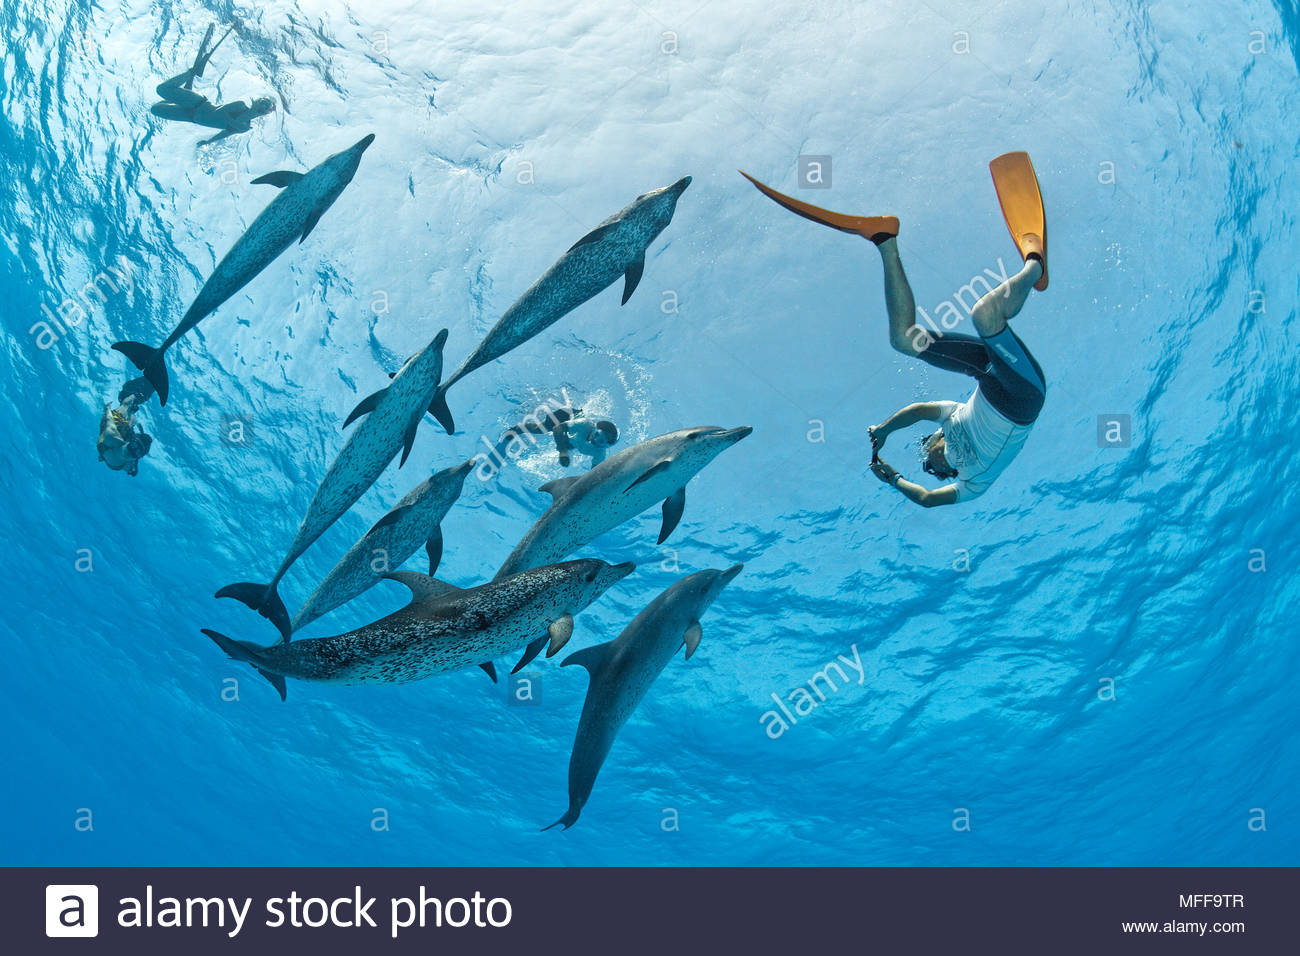 Snorkeler and Atlantic spotted dolphins (Stenella frontalis), Grand Bahama, Bahamas - Stock Image